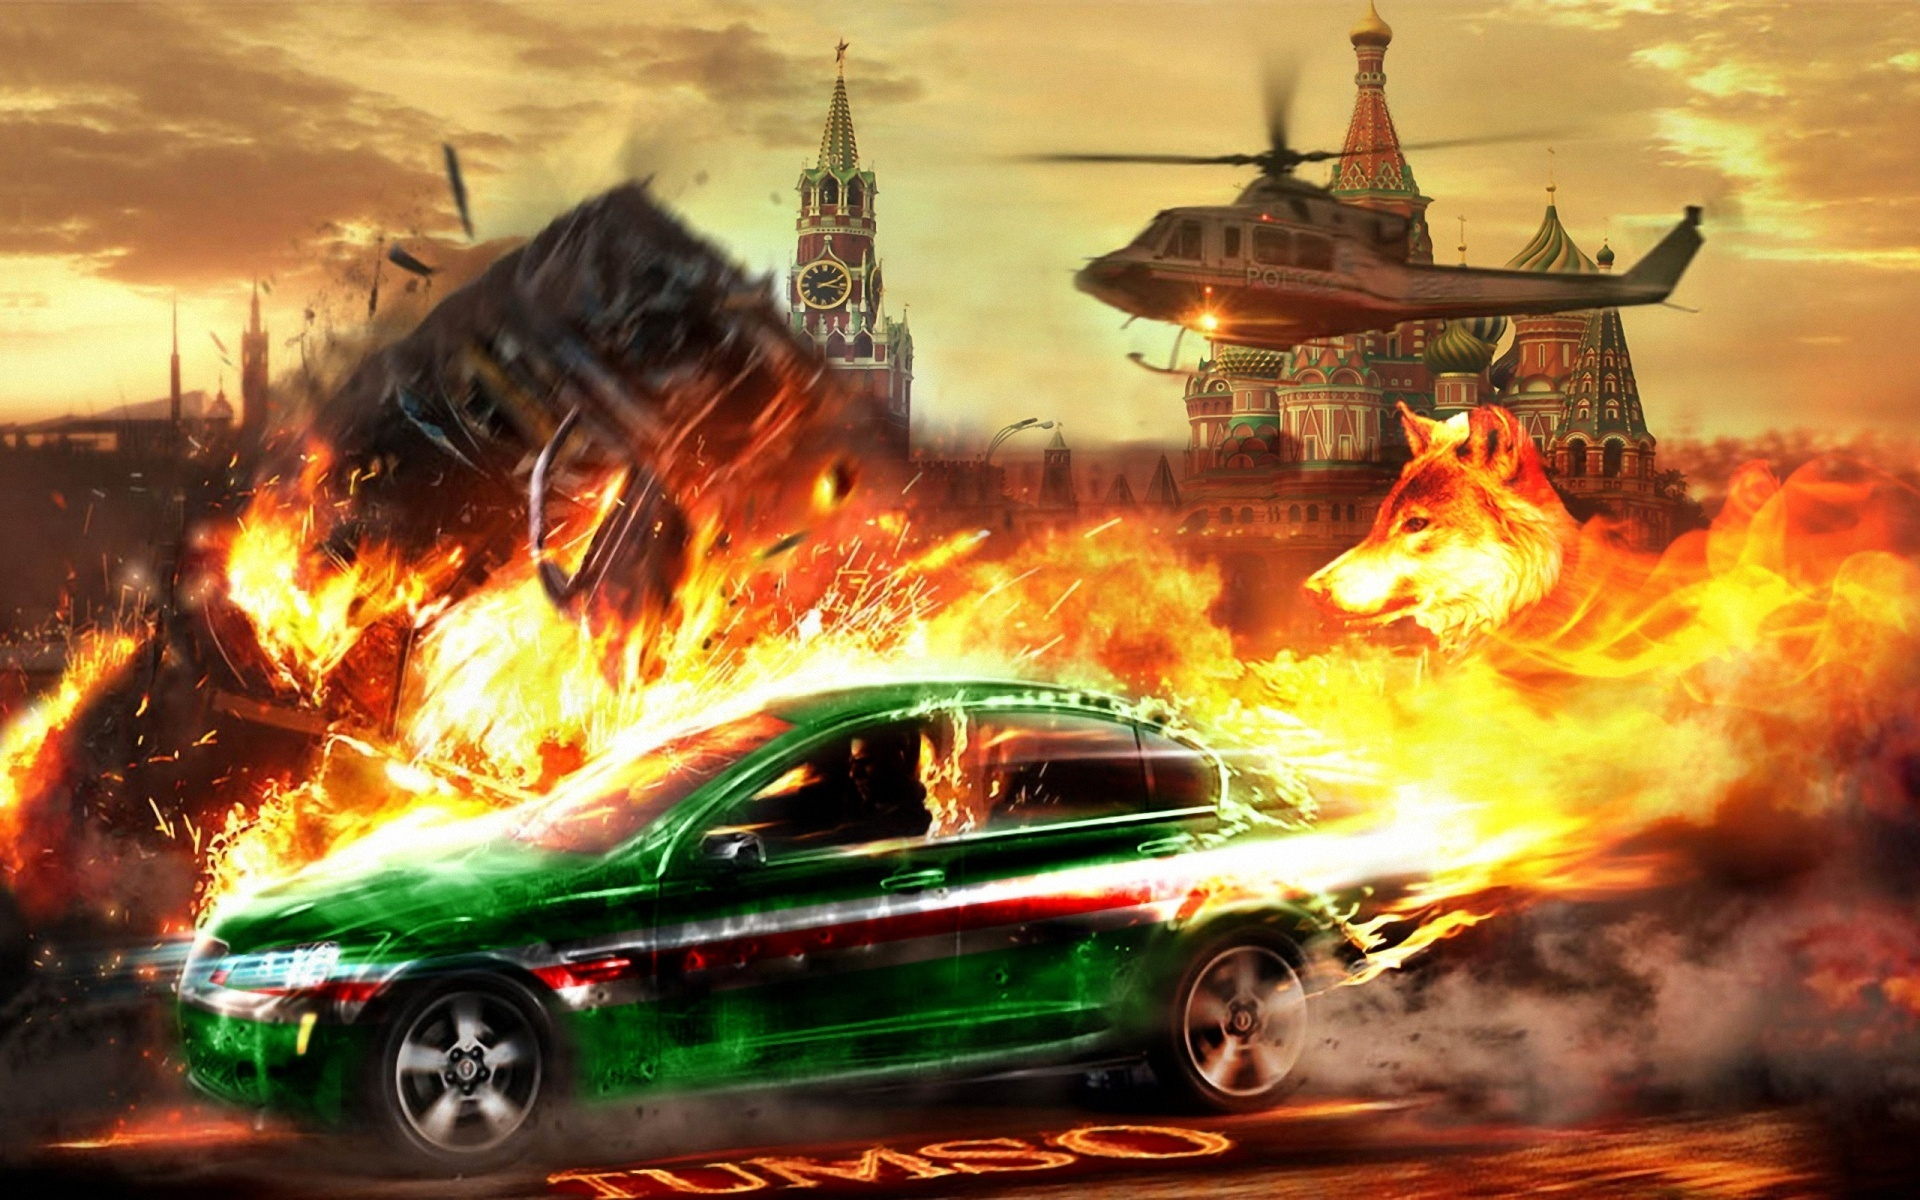 Download wallpaper 1920x1200 helicopter chase car kremlin for Chaise auto